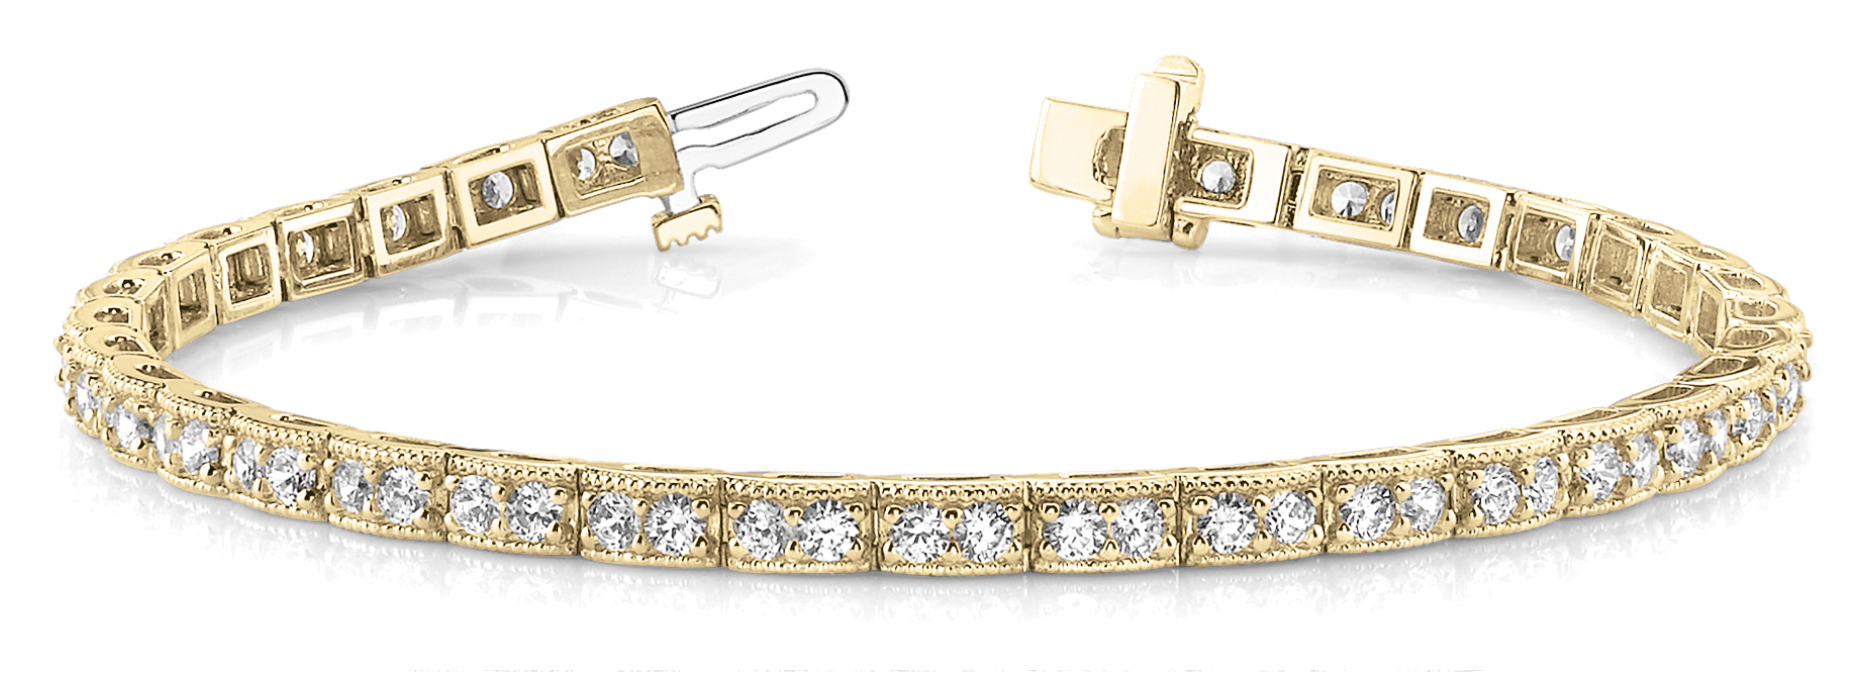 Petite Duo Round Diamond Bracelet 3 ct. Yellow Gold